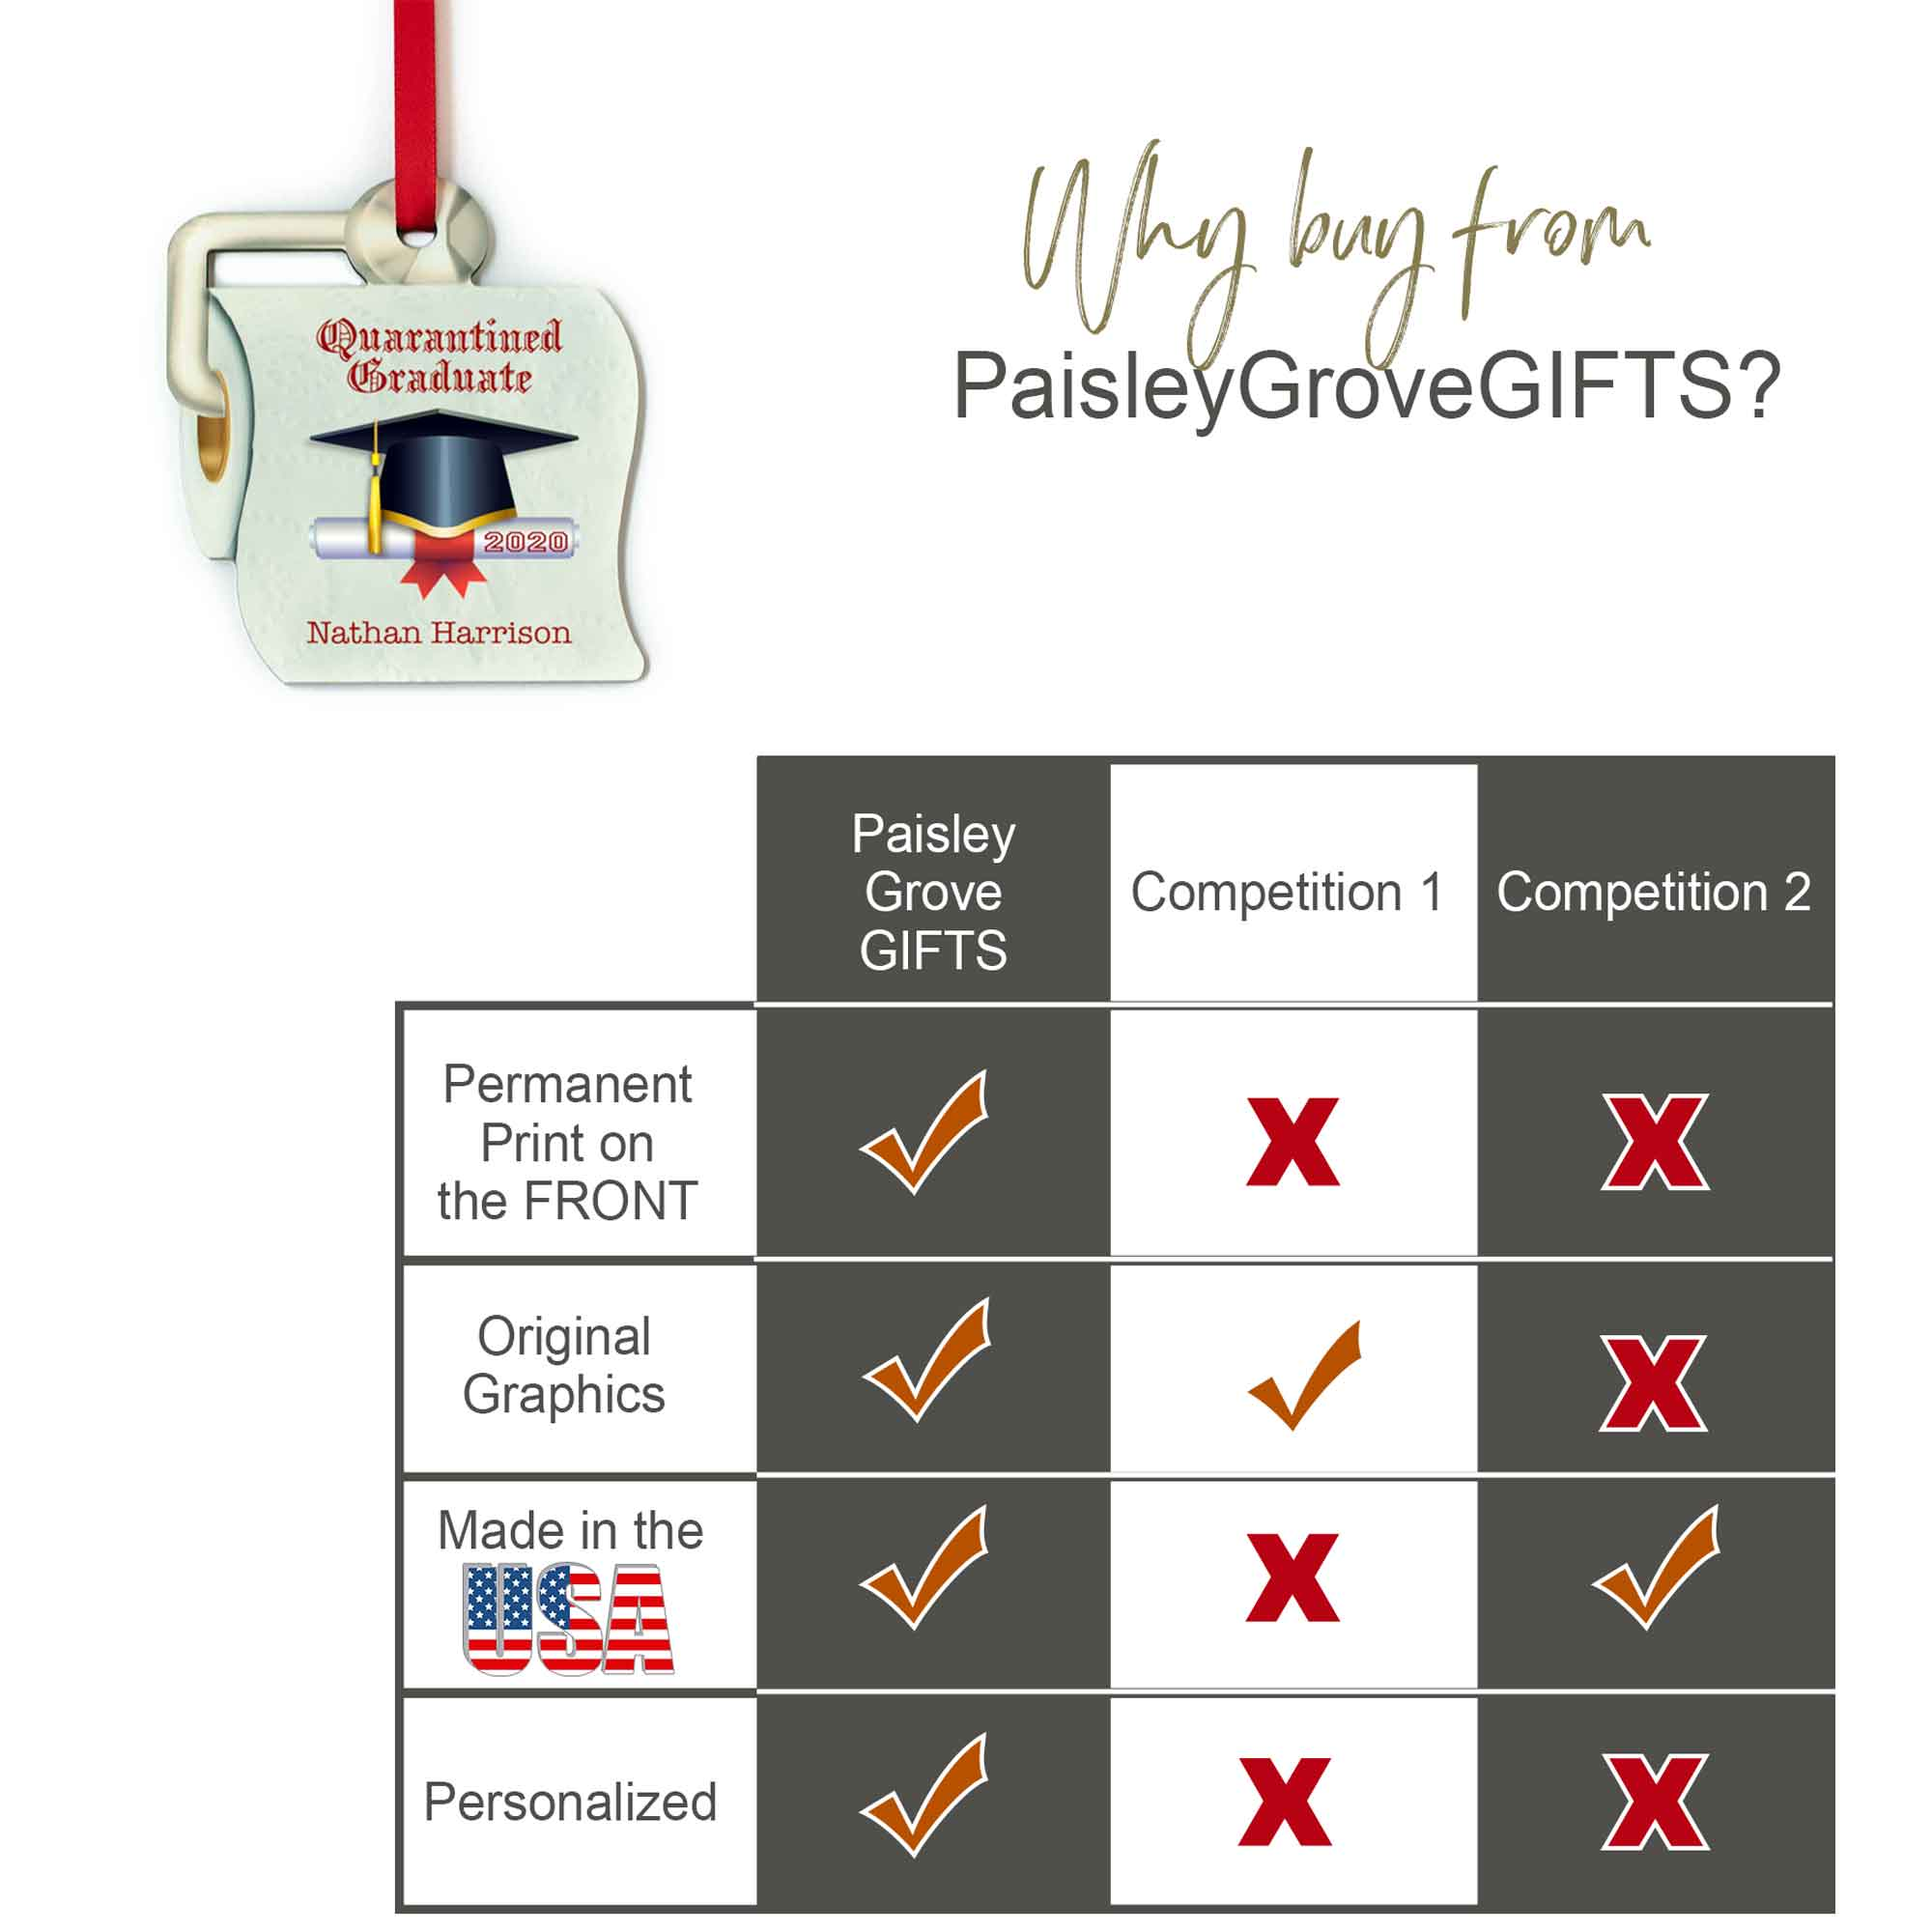 CopyrightPaisleyGroveGIFTS S525c1 Quality Ornament Superior to Others, Comparison Chart for Funny Toilet Paper Ornament